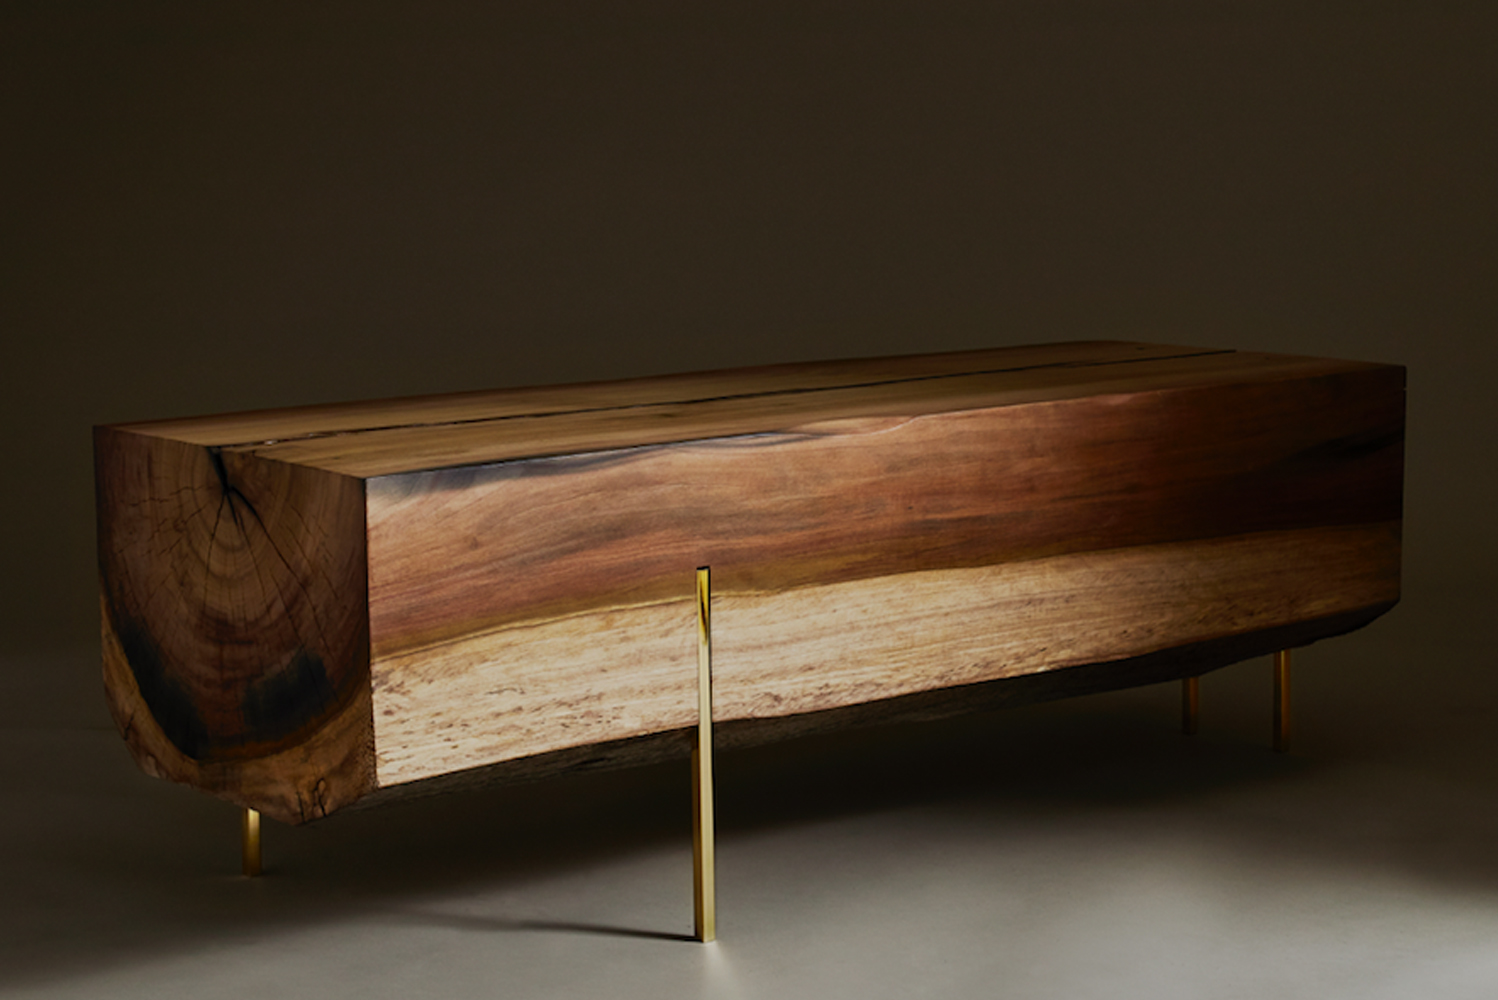 Stiletto bench's main structure is materialized using construction grade fine timber that weighs up to 300 pounds.